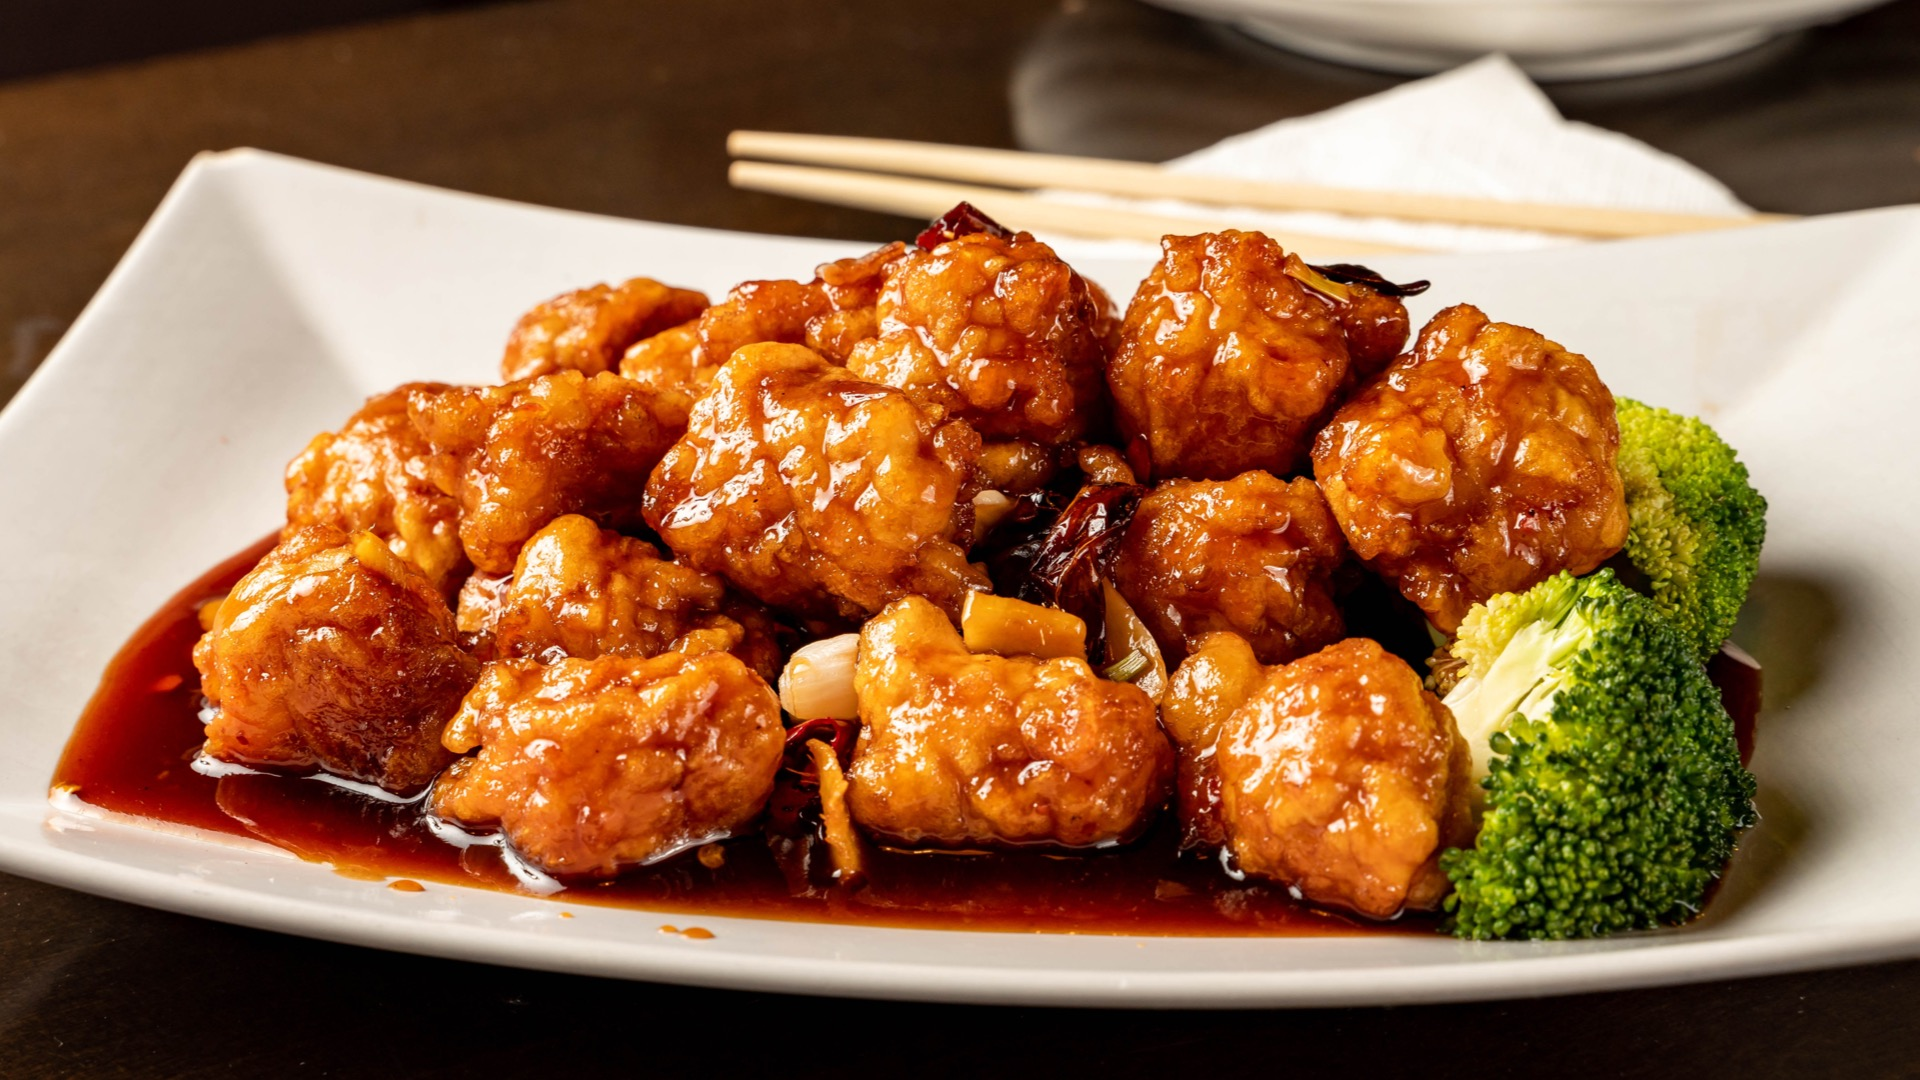 Plate of sesame chicken | Asian cuisine in Baltimore